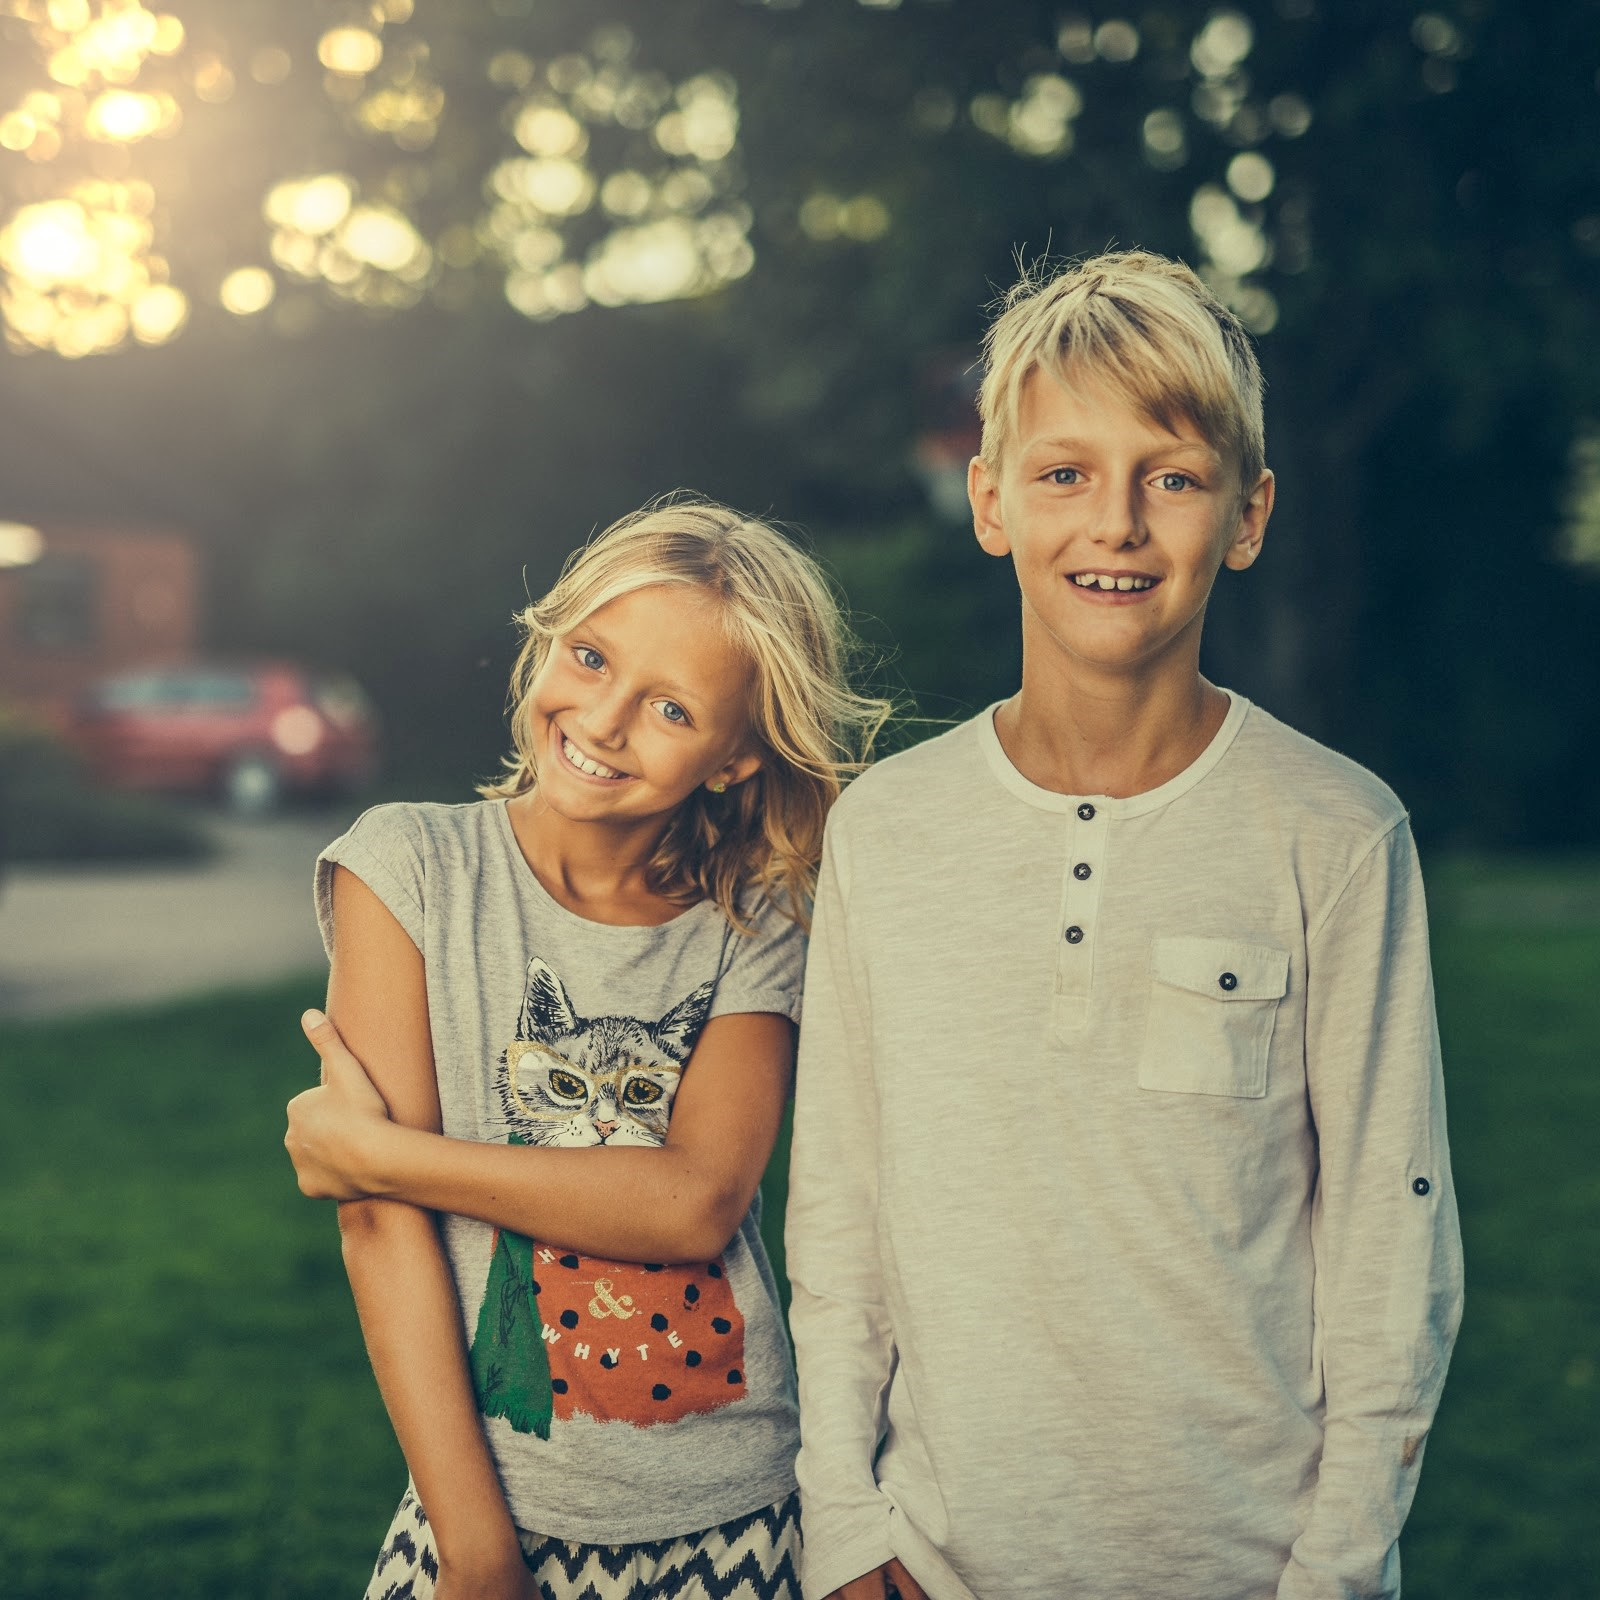 two blond kids next to each other left is the younger sister of the right boy next to her they are in a park smiling to the camera